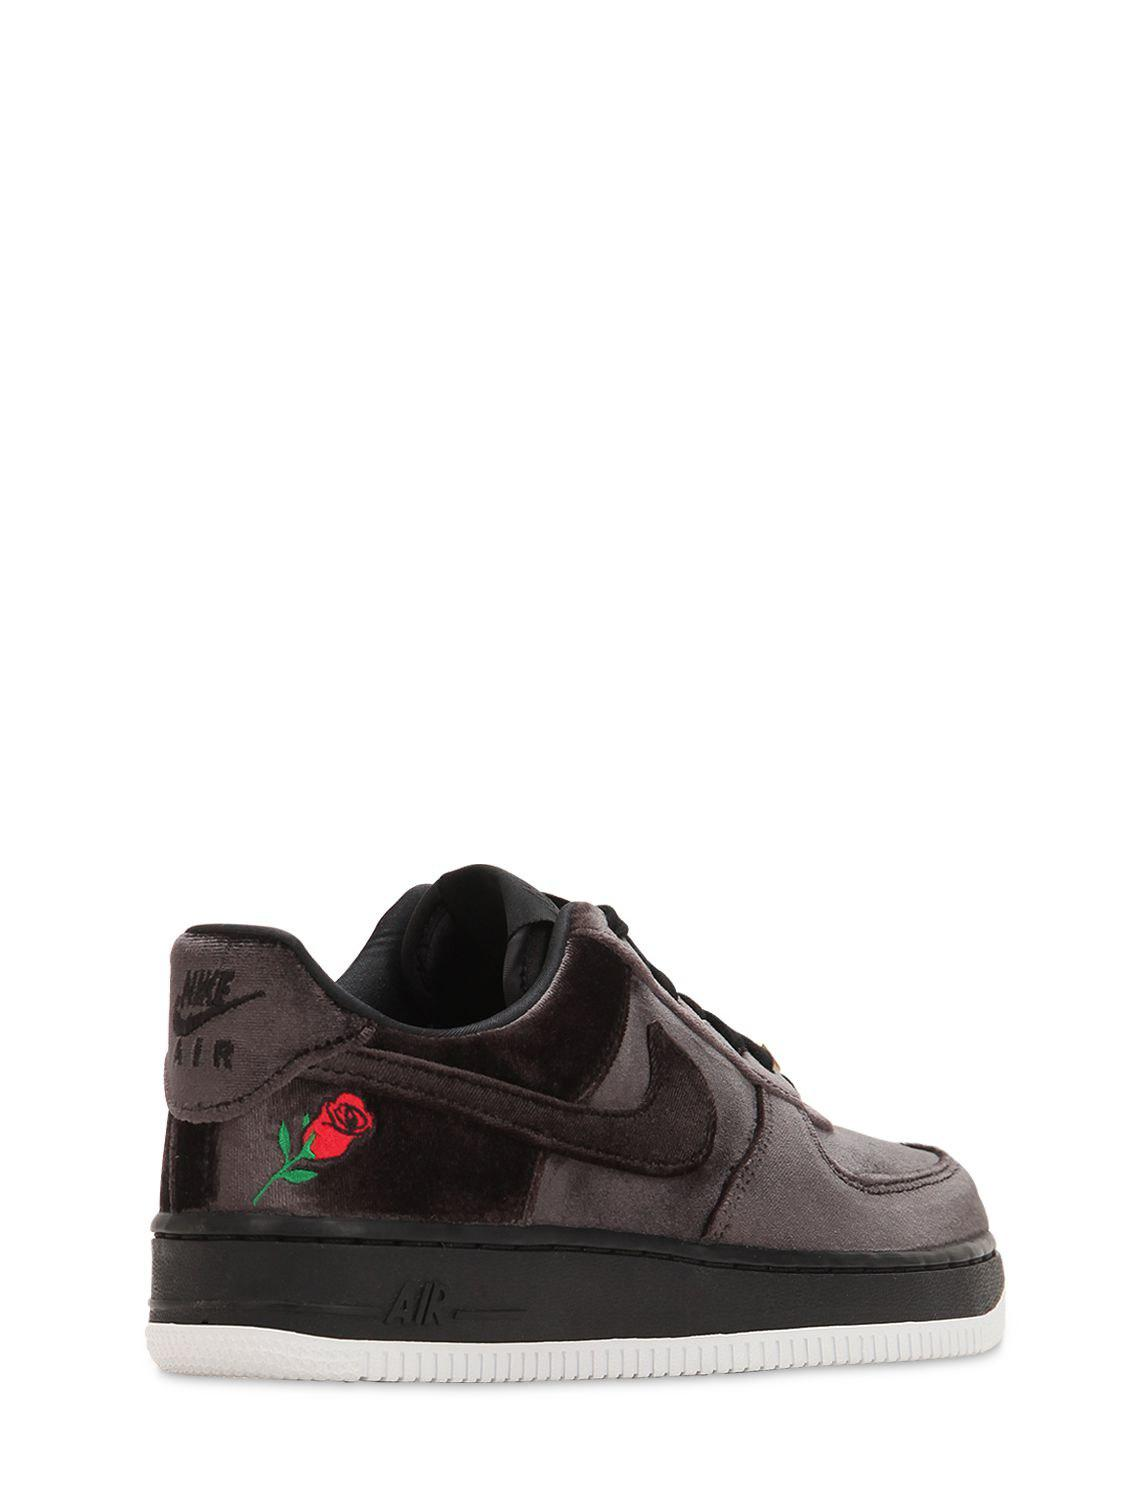 Lyst - Nike Air Force 1  07 Qs Black Velvet Sneakers in Black for Men 0731d74ed